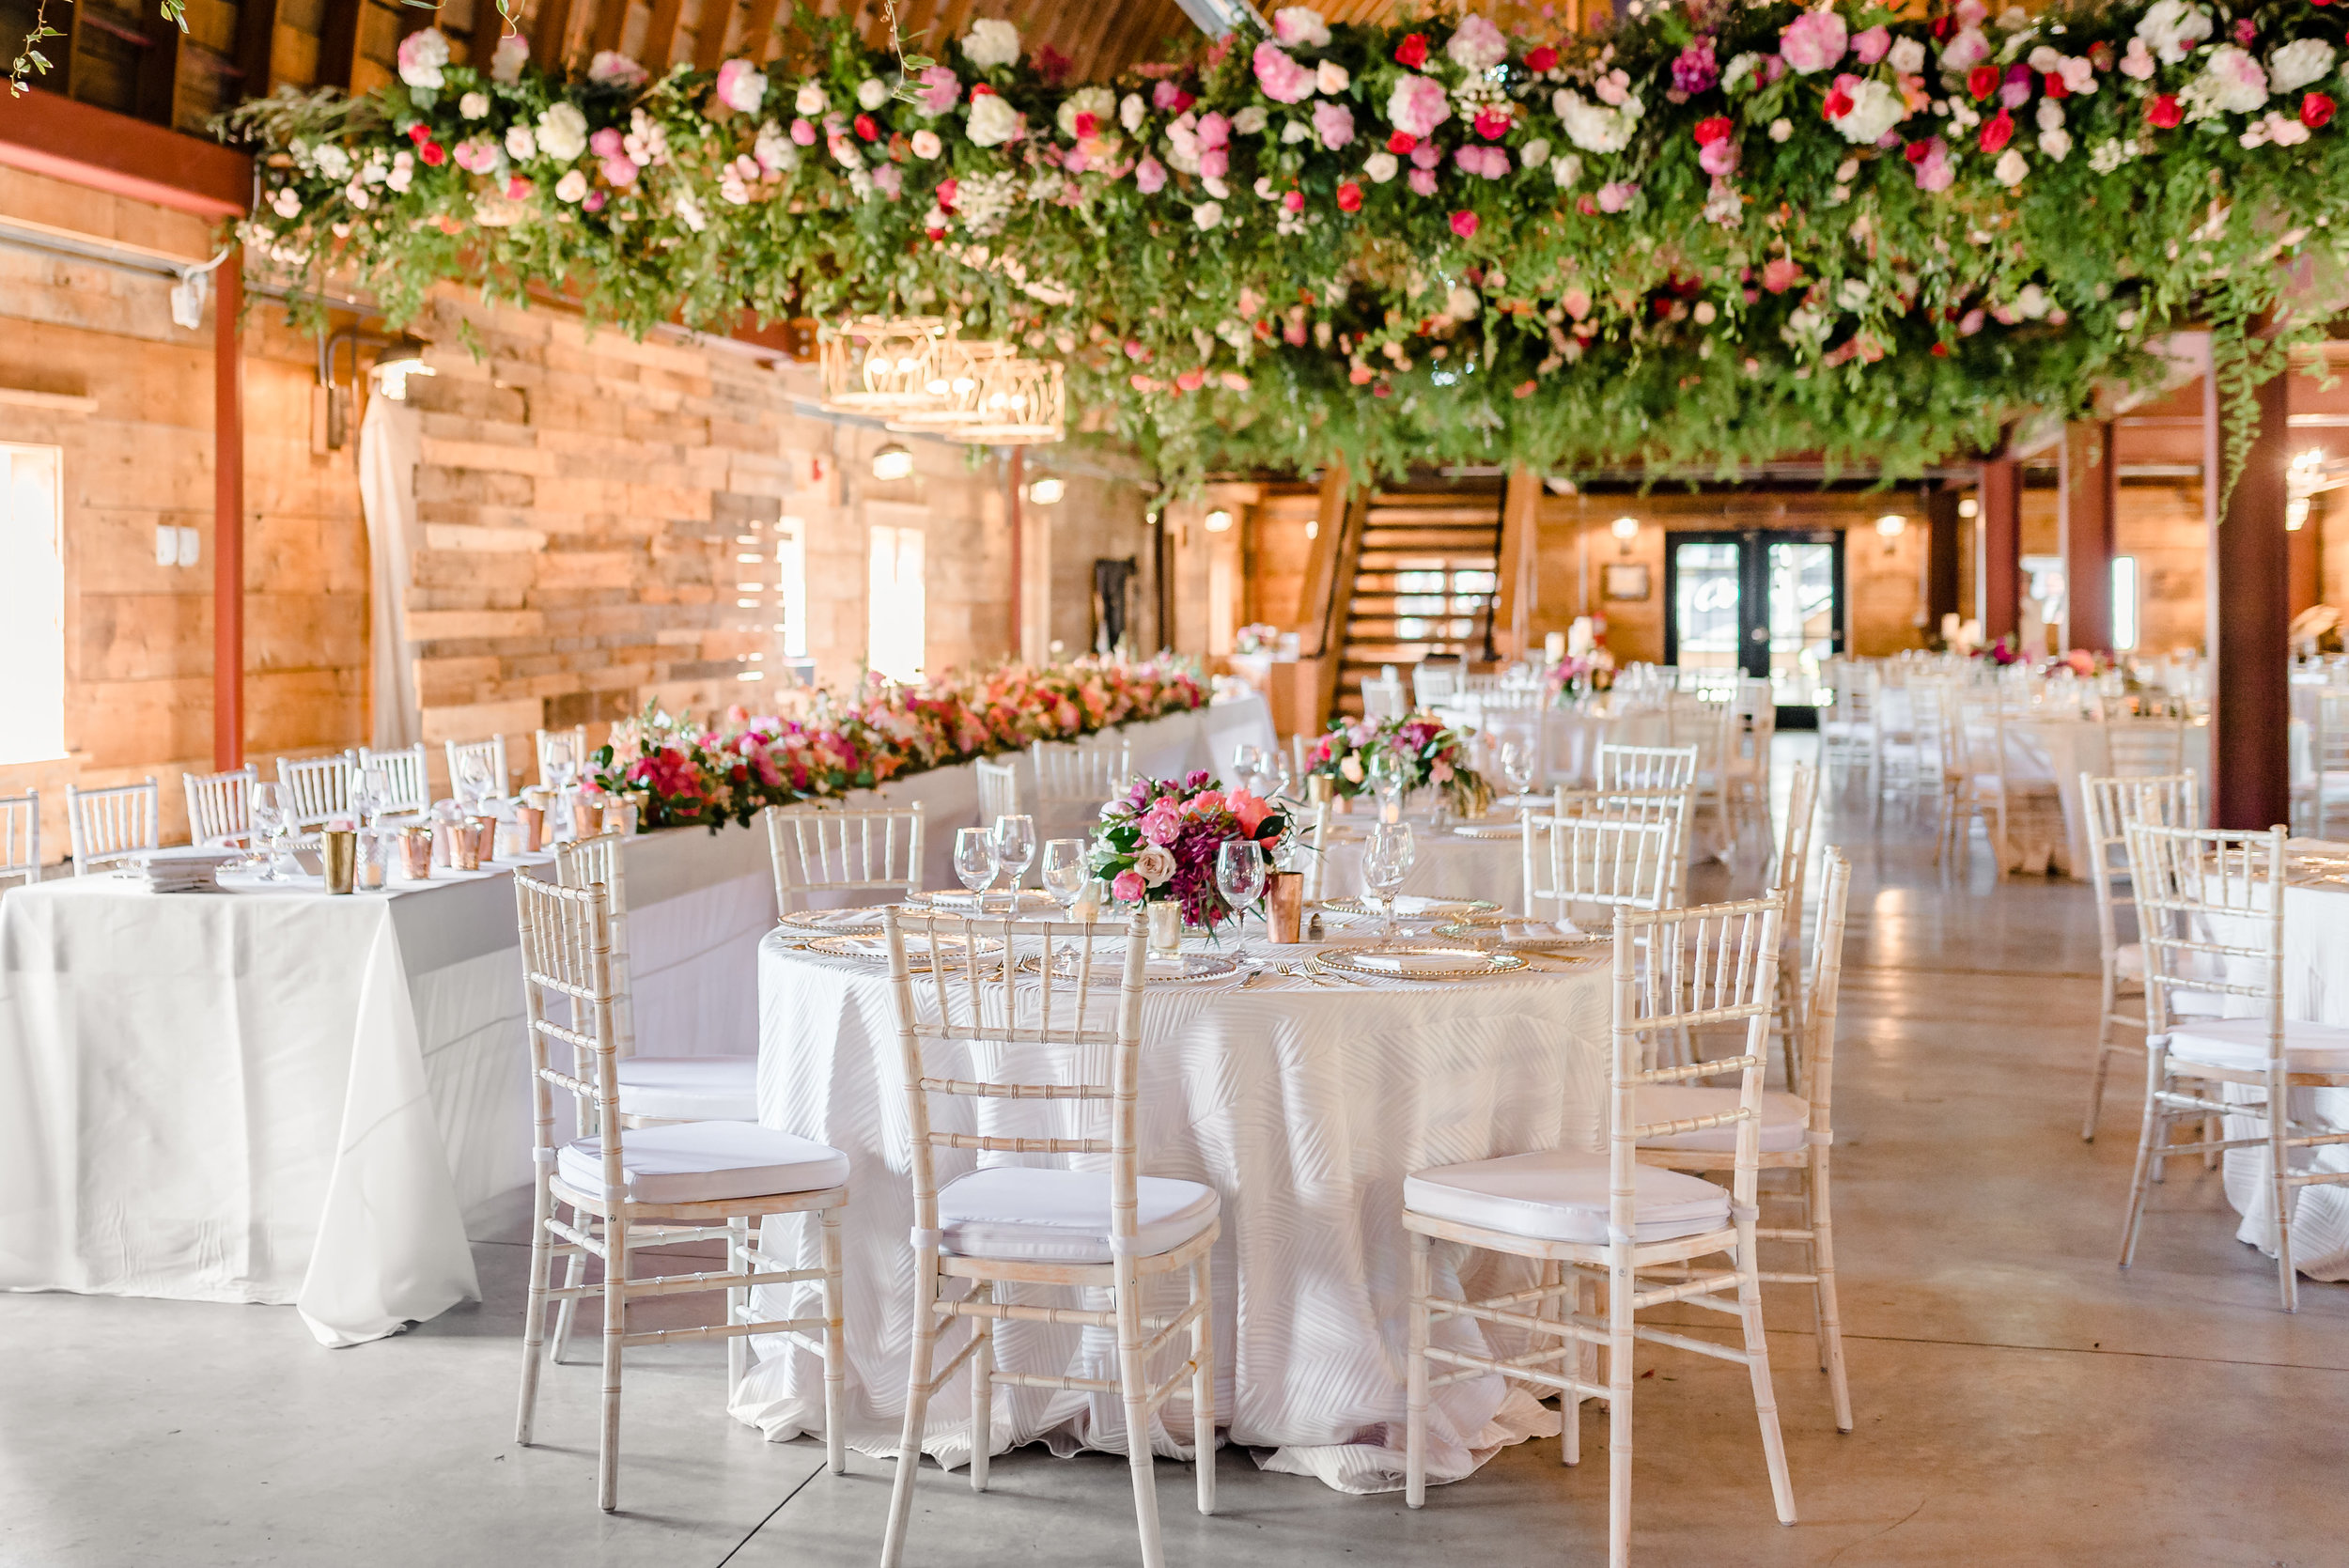 Luxury Barn Wedding at Historic John P Furber Farm Wedding Reception Decor - Munster Rose - See Jane Plan - Best MN Wedding Photographers